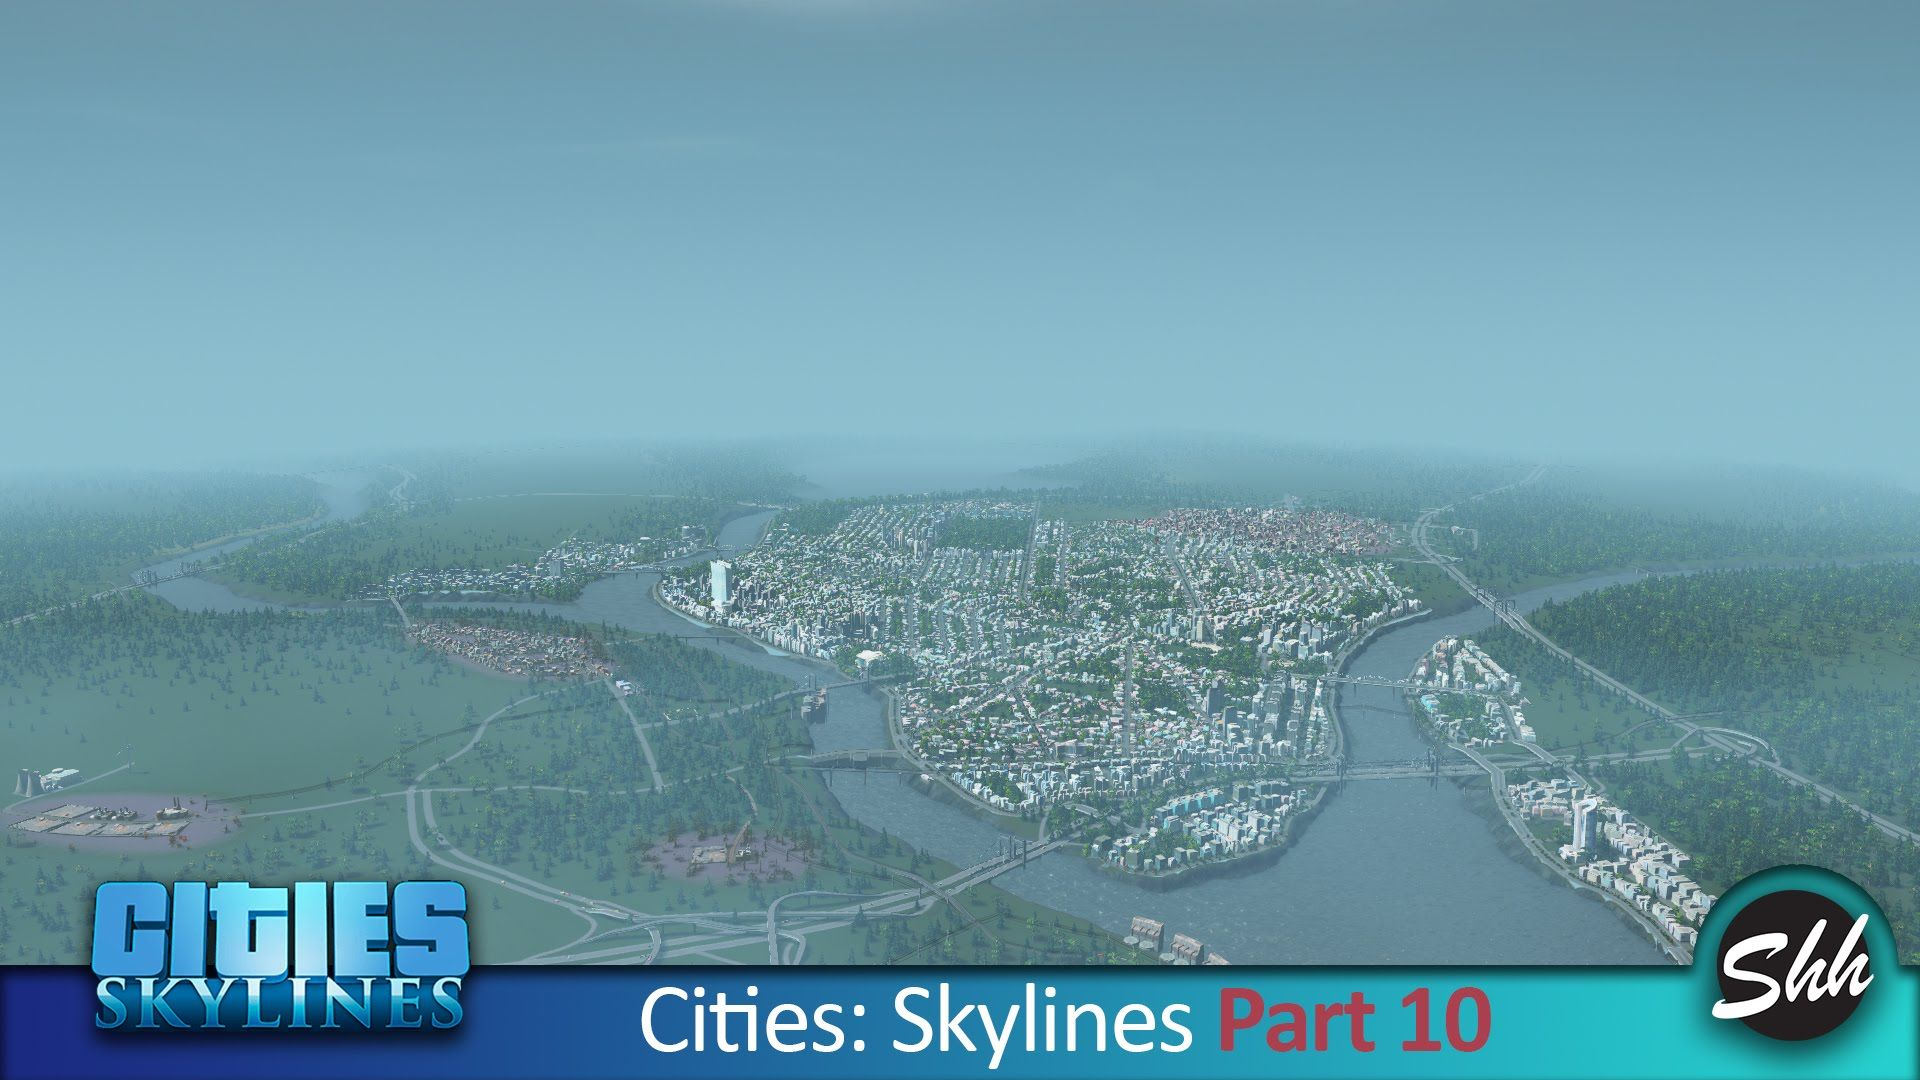 Citiesskylines Part 10 Like Share And Subscribe Https Www Youtube Com Watch V Dqrj Gie8fo City Skyline City Skyline